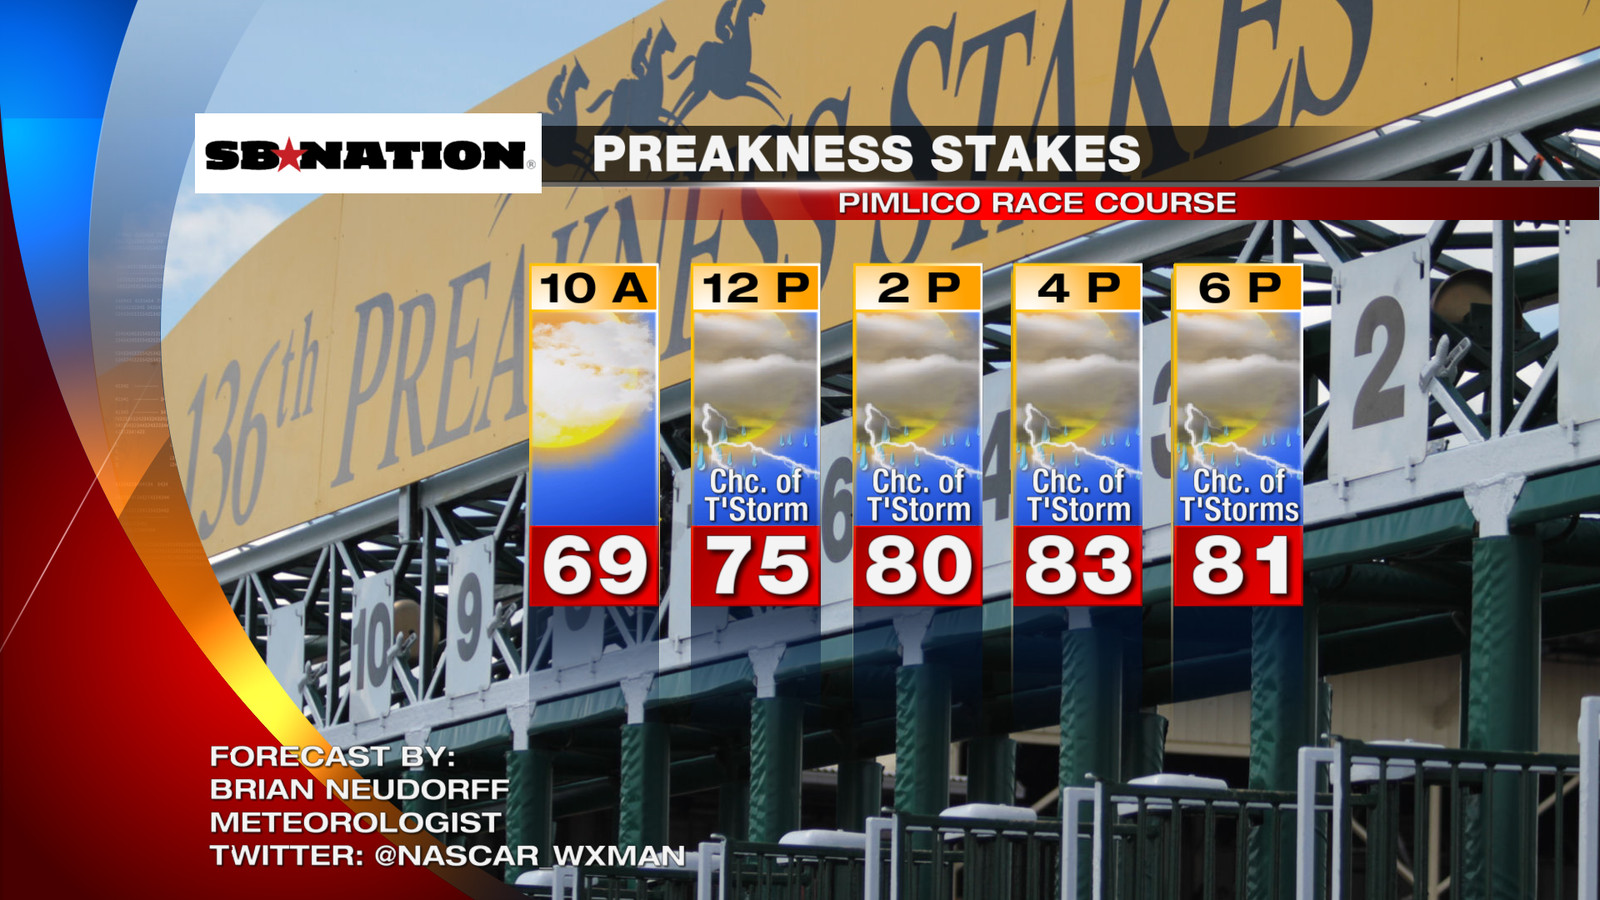 preakness stakes 2015 race day weather forecast